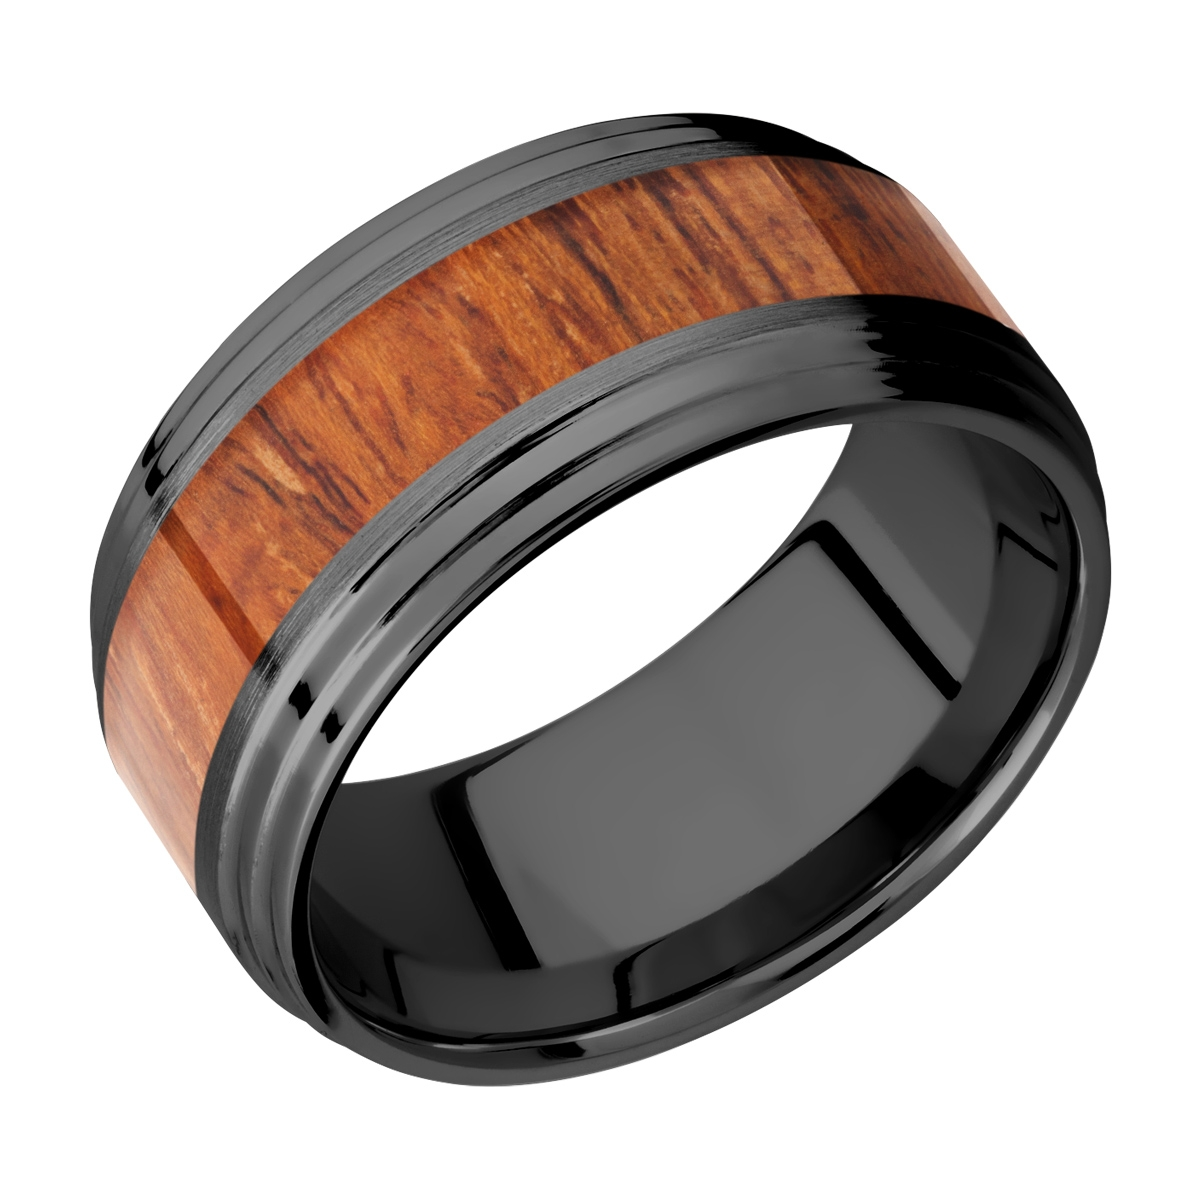 Lashbrook Z10F2S15/HARDWOOD Zirconium Wedding Ring or Band